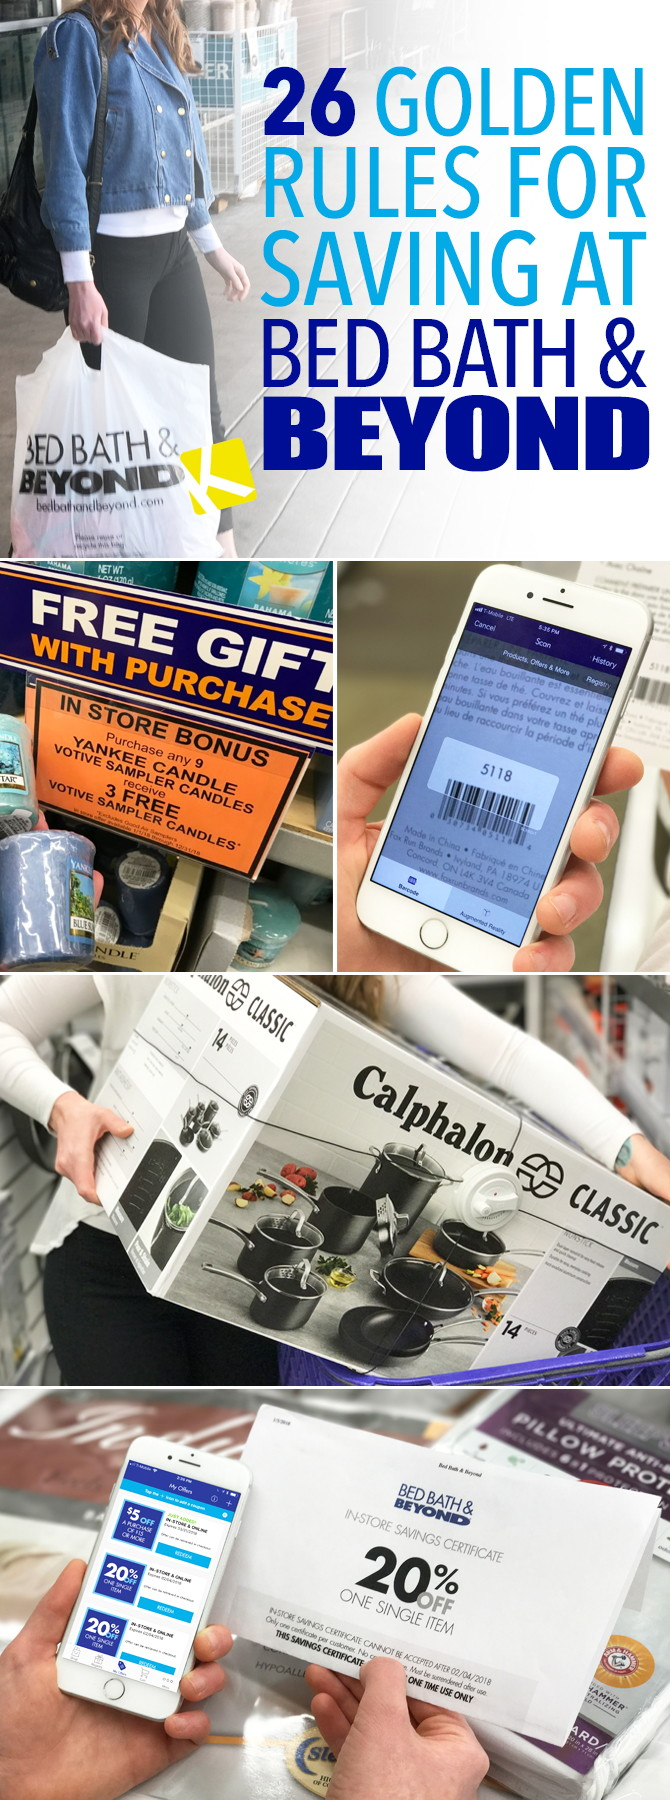 26 Golden Rules You Must Follow to Save at Bed Bath   Beyond - The ... 519599b9d5734